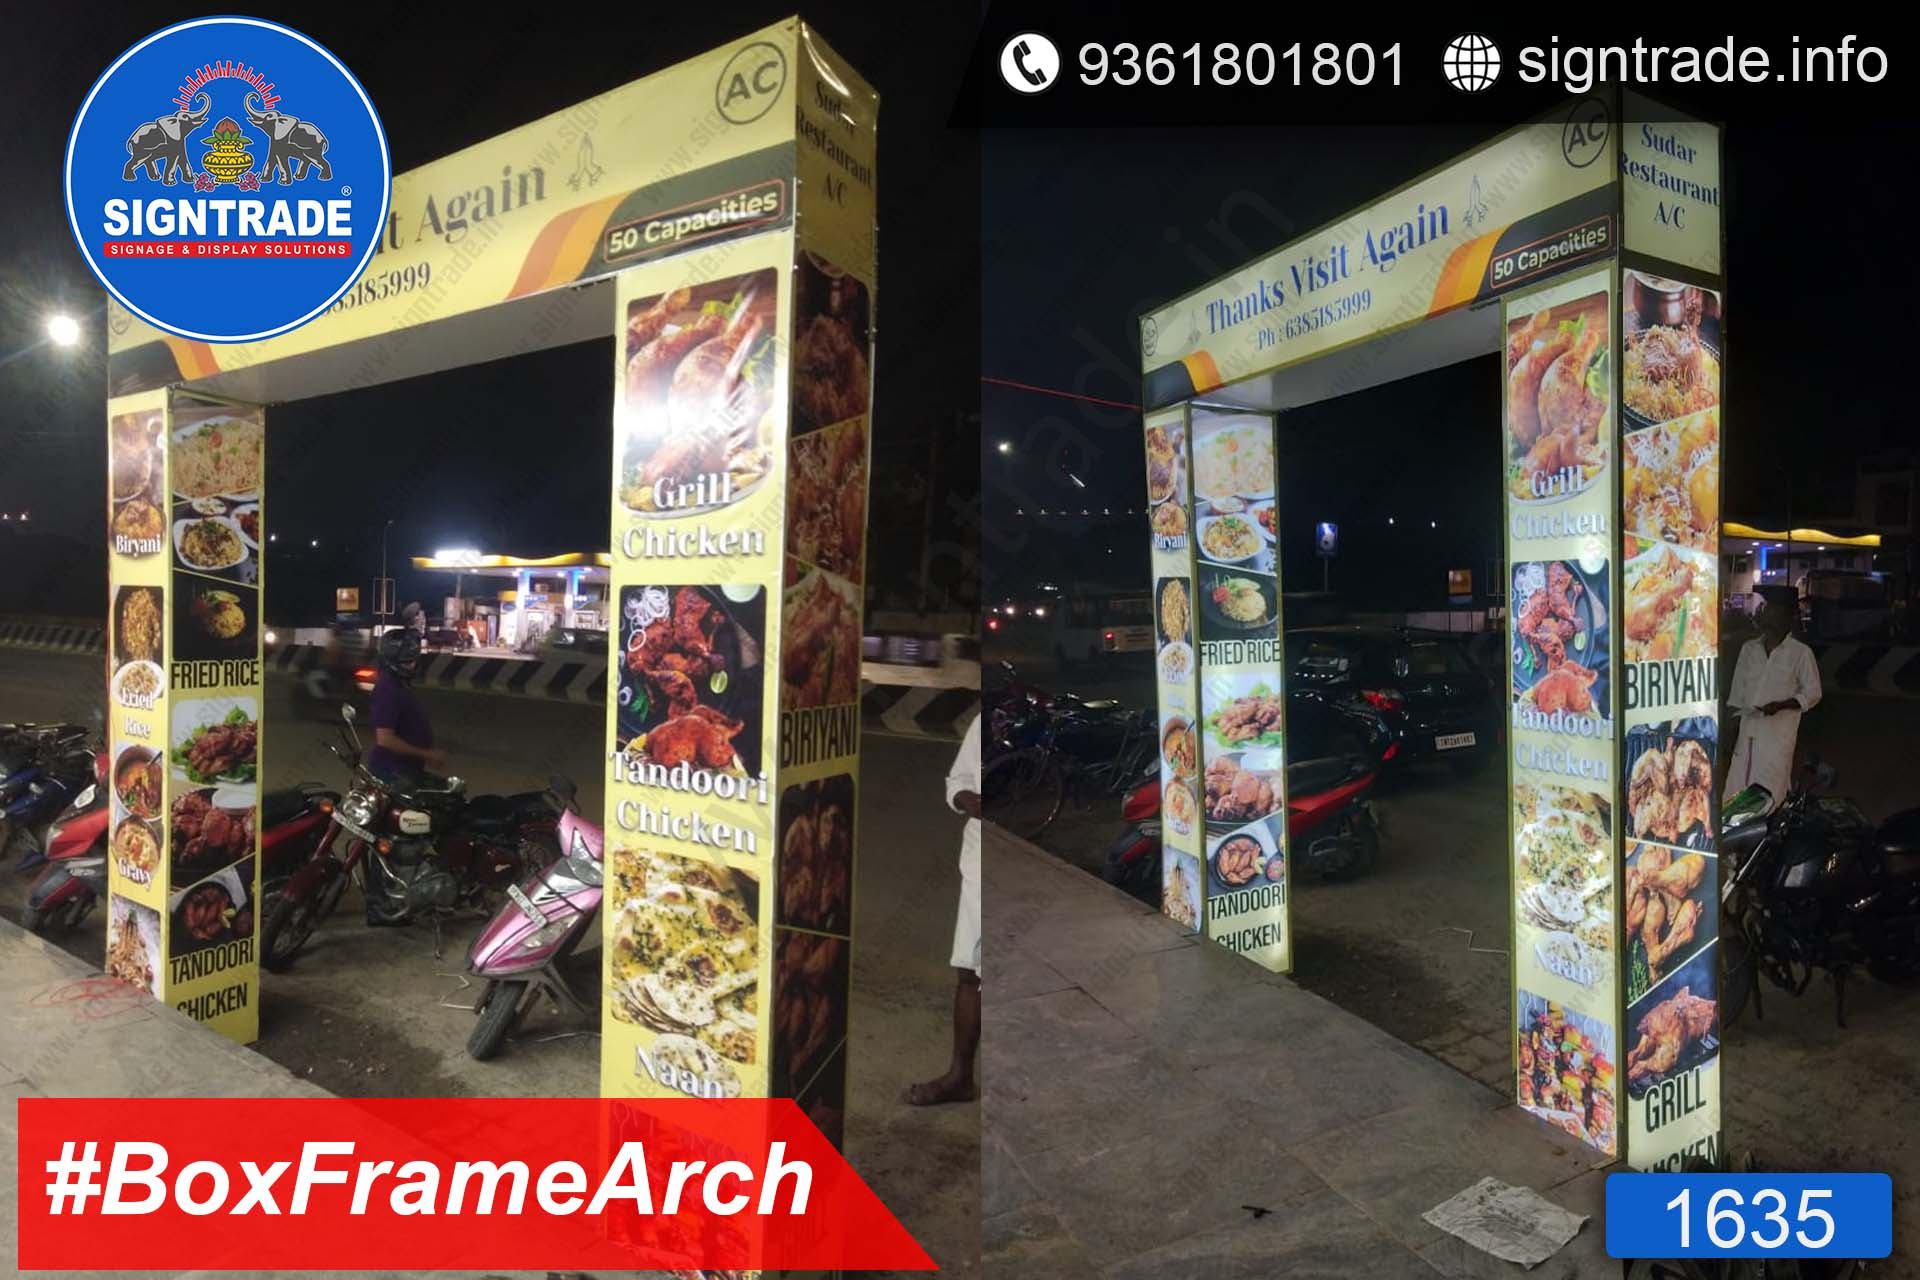 Sudar Restaurant, Chennai - SIGNTRADE - Backlit Entrance Arch Manufacturers in Chennai